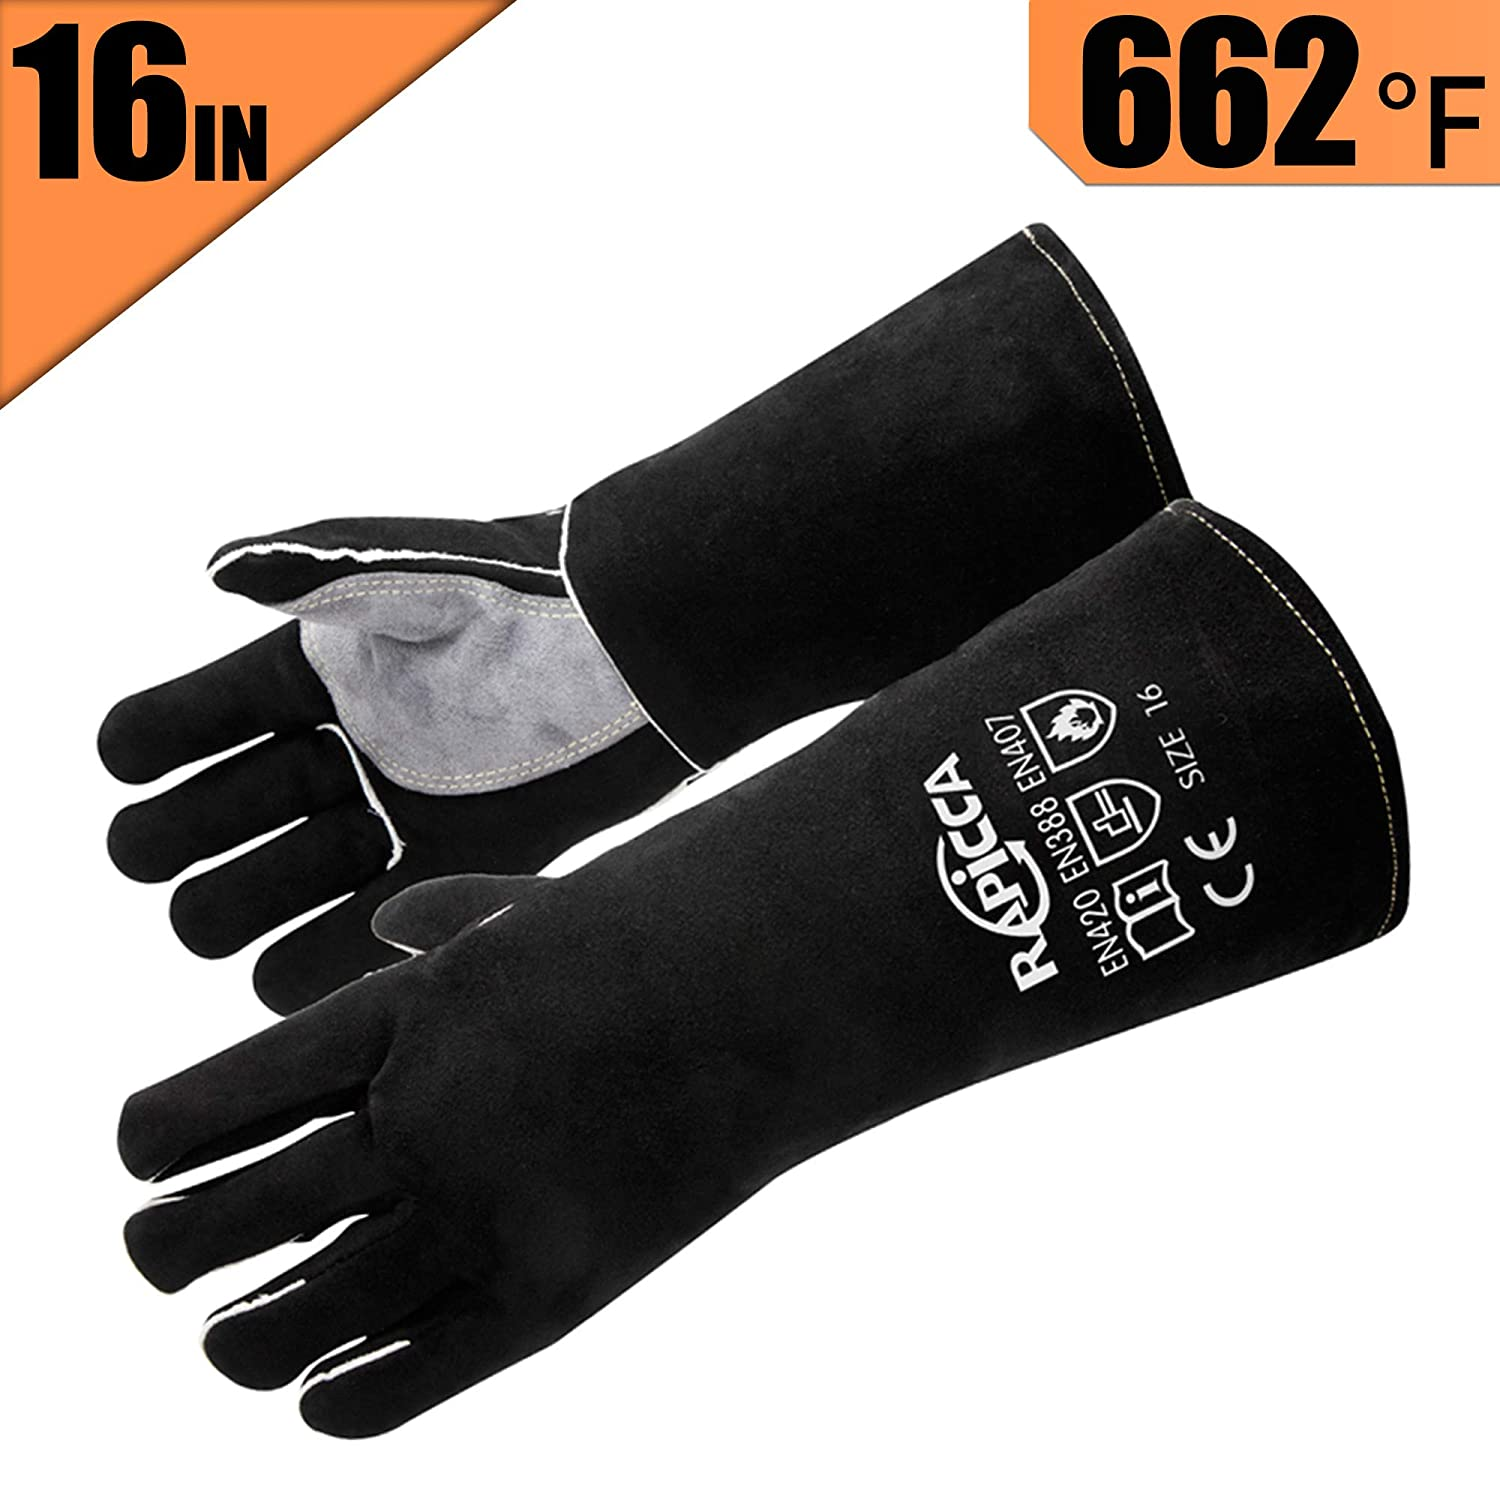 RAPICCA Extreme Heat Resistant BBQ Gloves, Food Grade Kitchen Oven Mitts – Fire Resistant Oven Gloves with Cut Resistant,Cooking Hot Gloves for Grilling, Cutting,Baking,Fire Gloves for Fireplace 16in